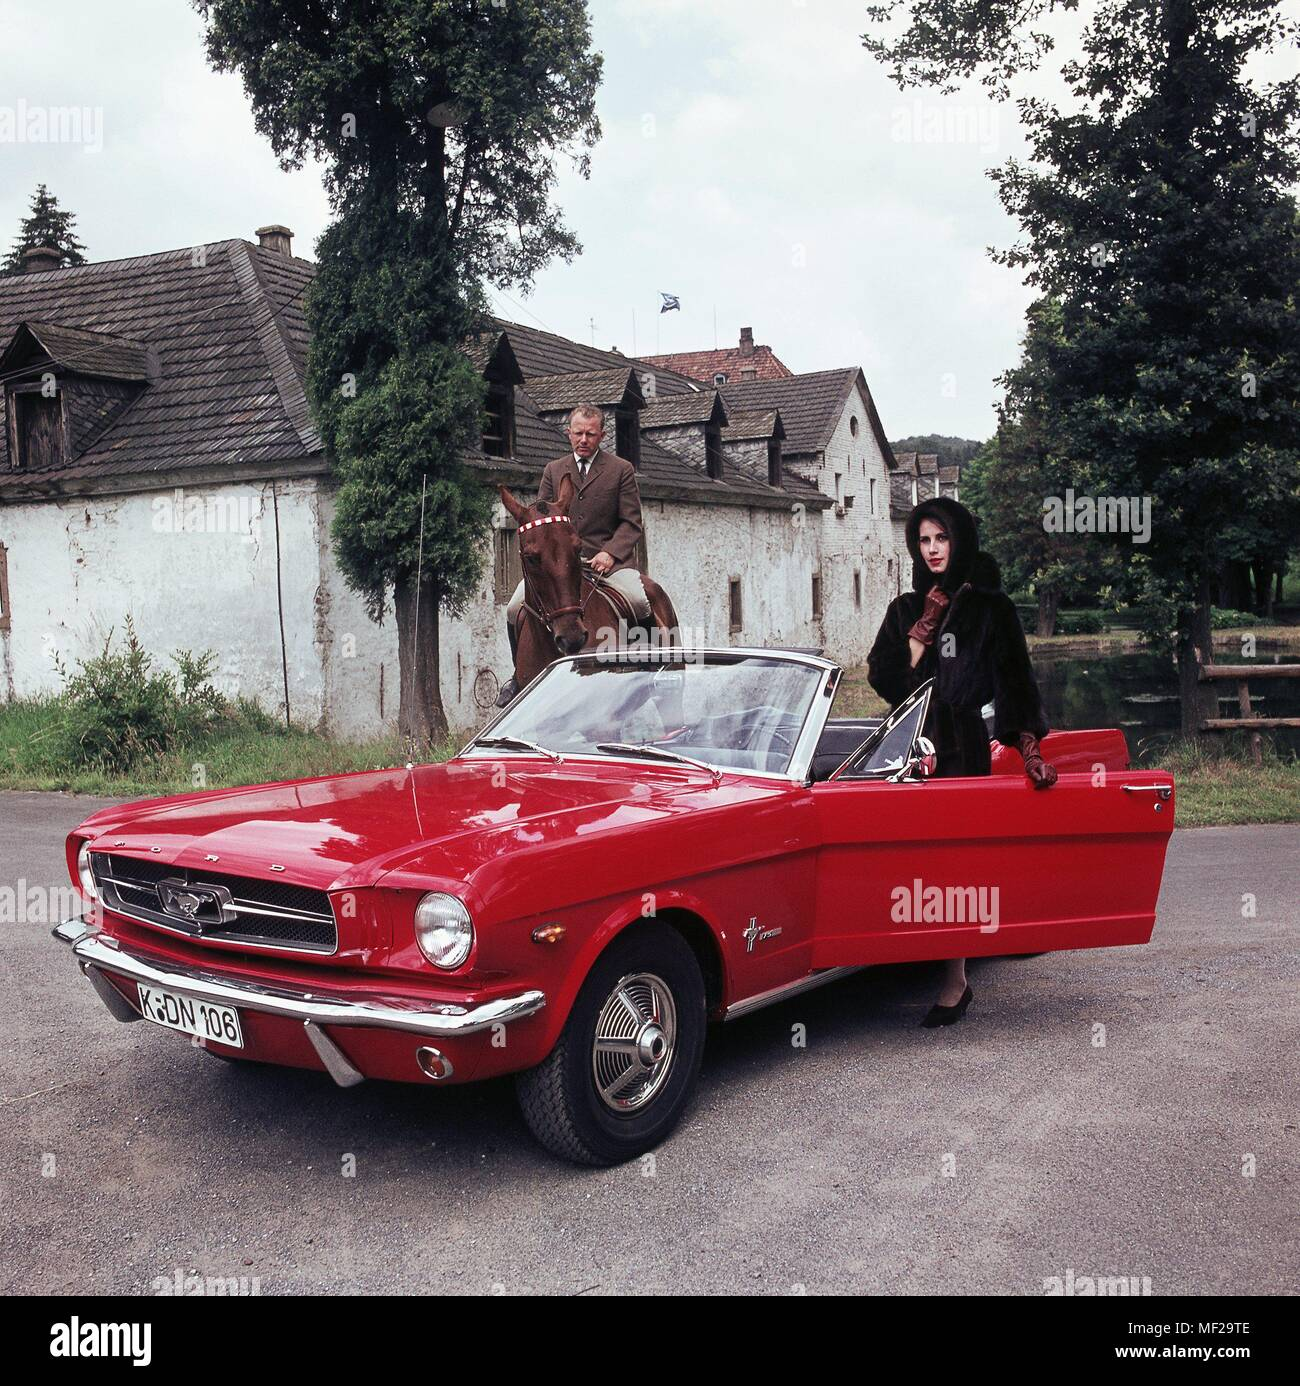 A rider on horseback next to a red ford mustang cabriolet shot in the 70s usage worldwide